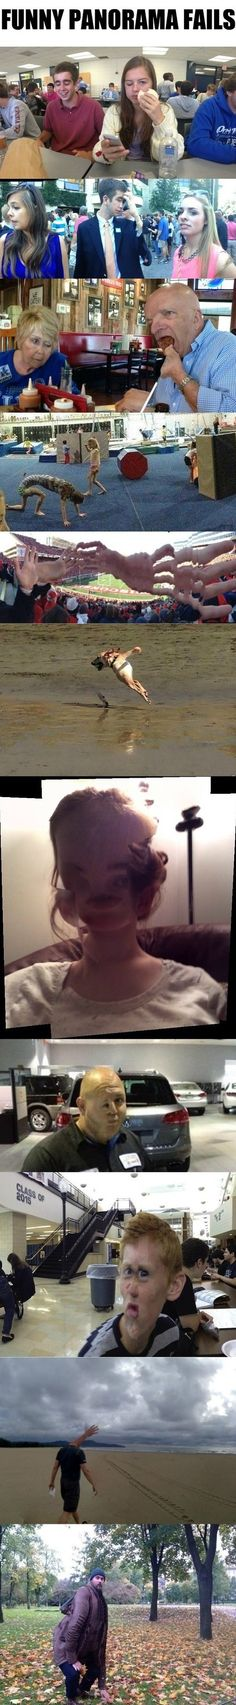 Panorama Fails - http://funny-pictures-blog.com/2014/01/24/funny-pictures-panorama-fails/